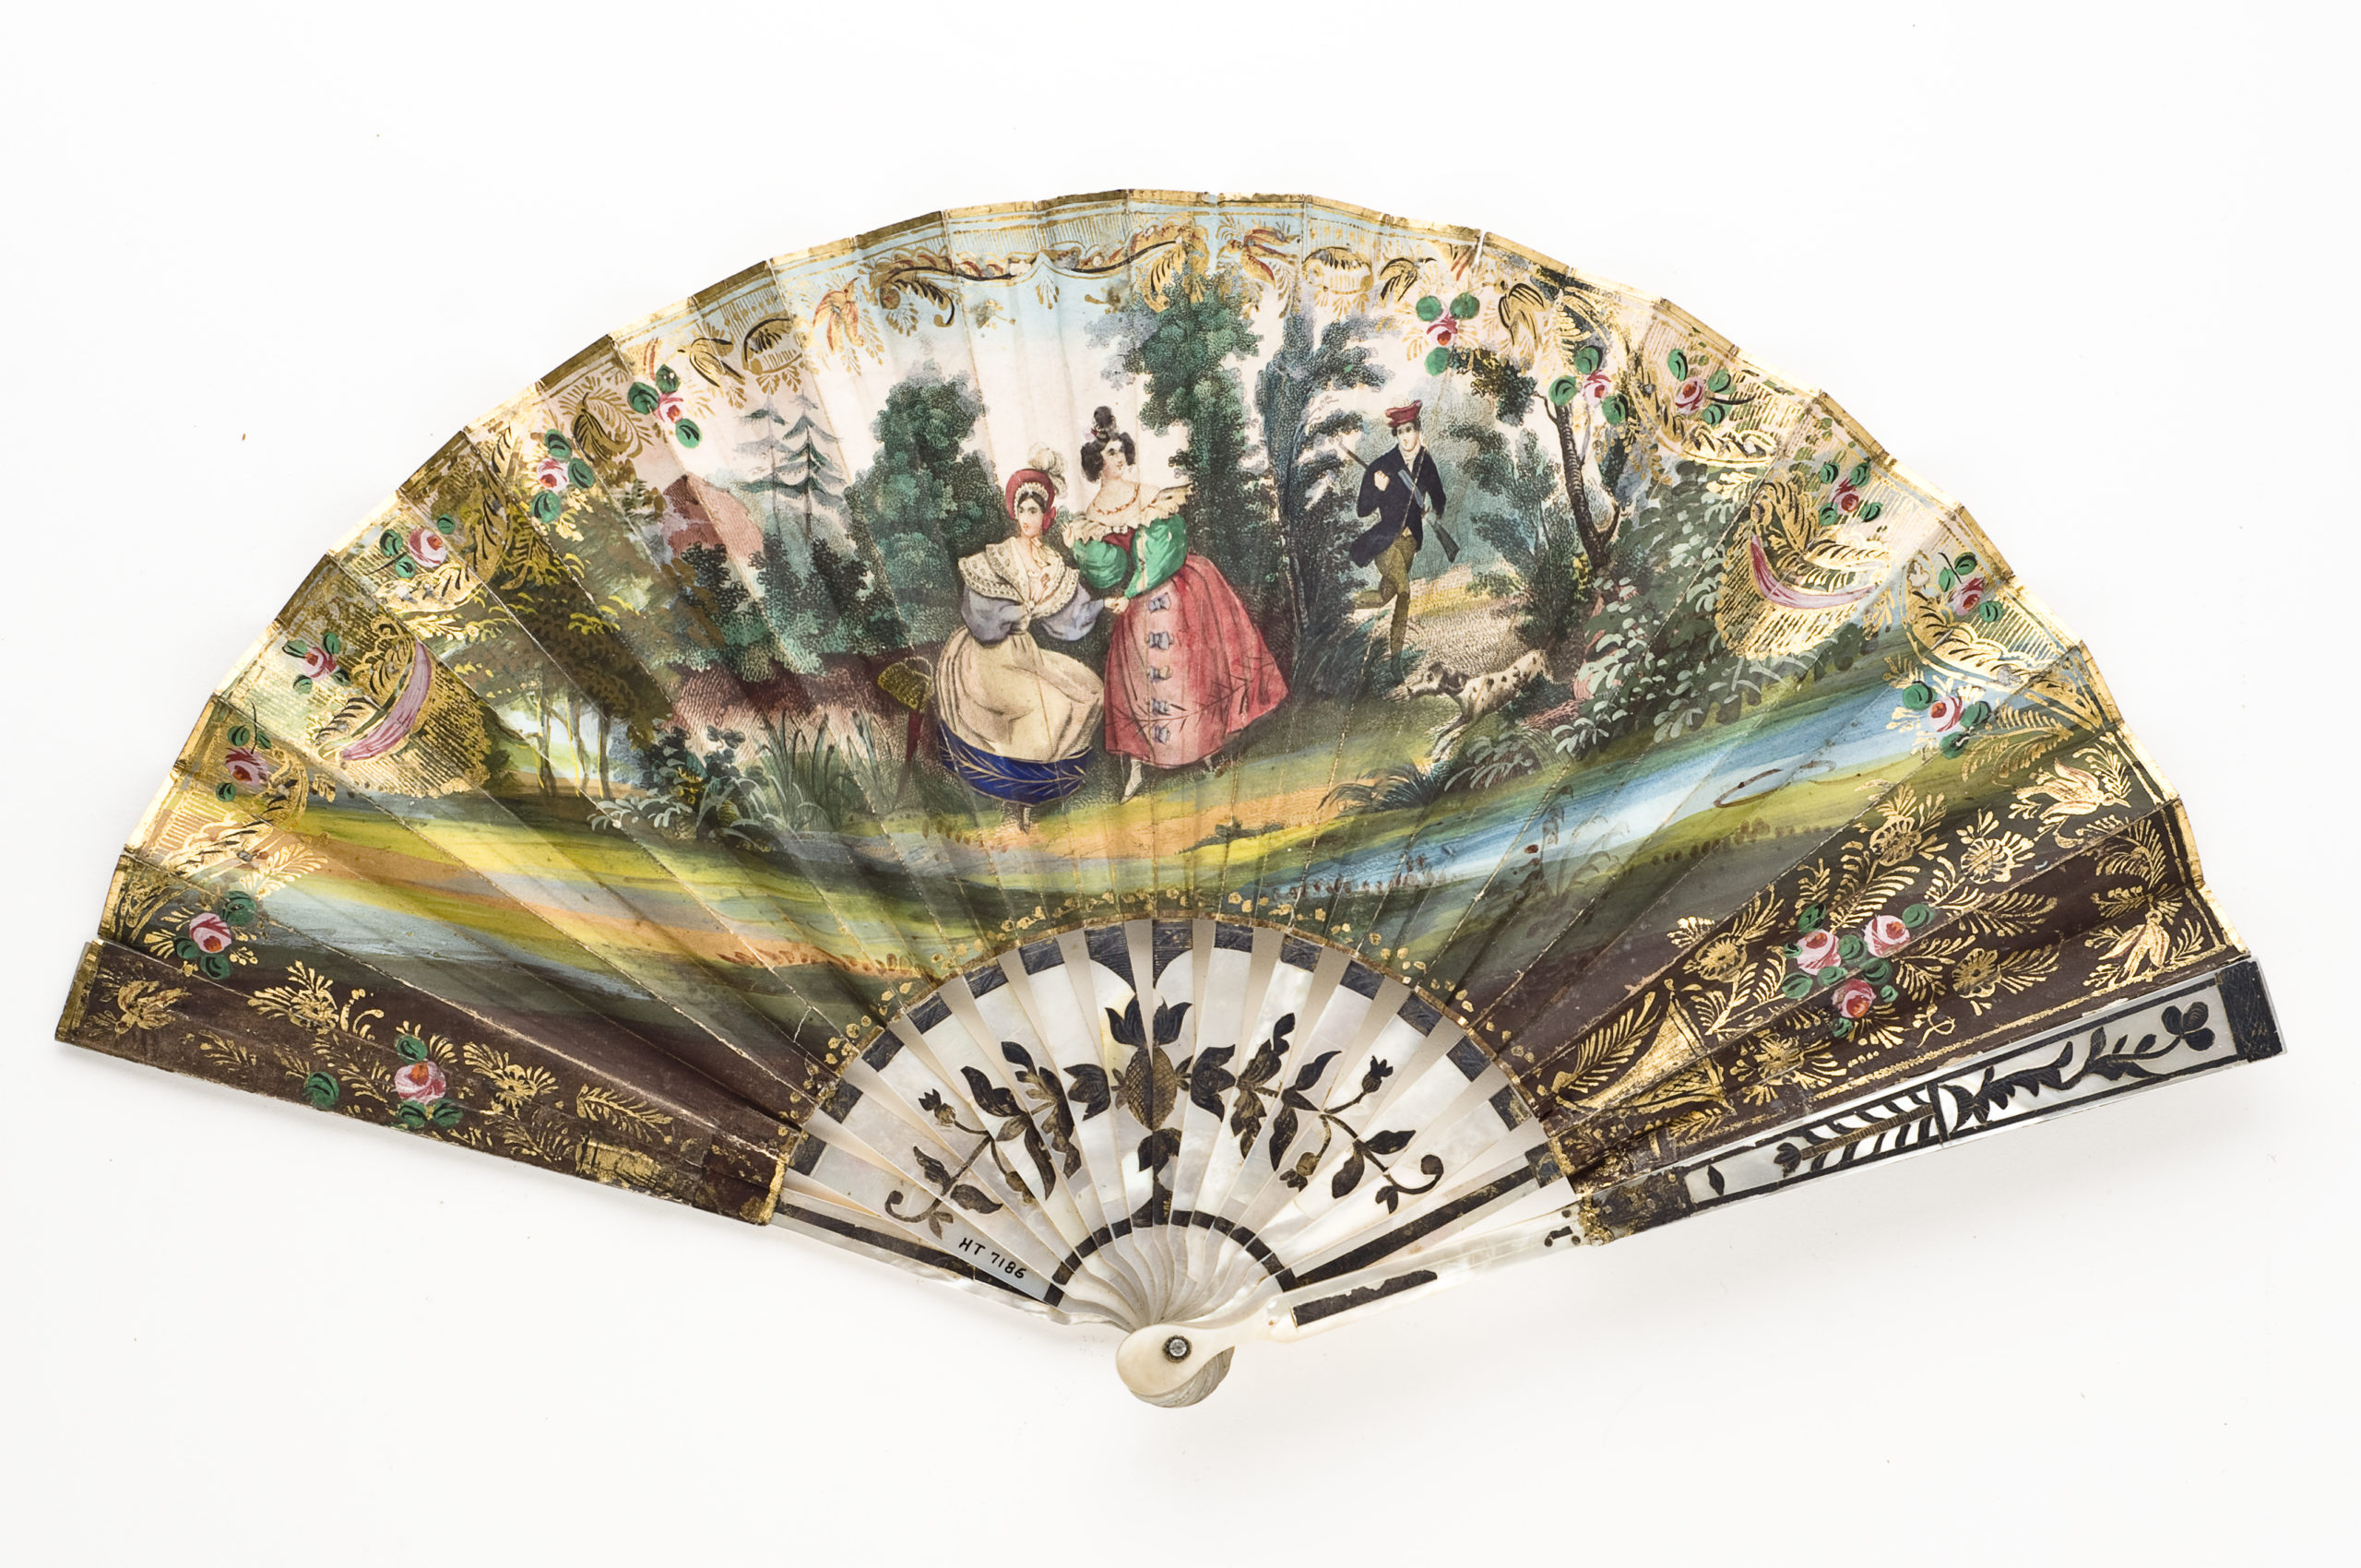 Exclusive Storeroom Tour: Accessories Through Time with Curator of Historic Textiles Virginia Theerman